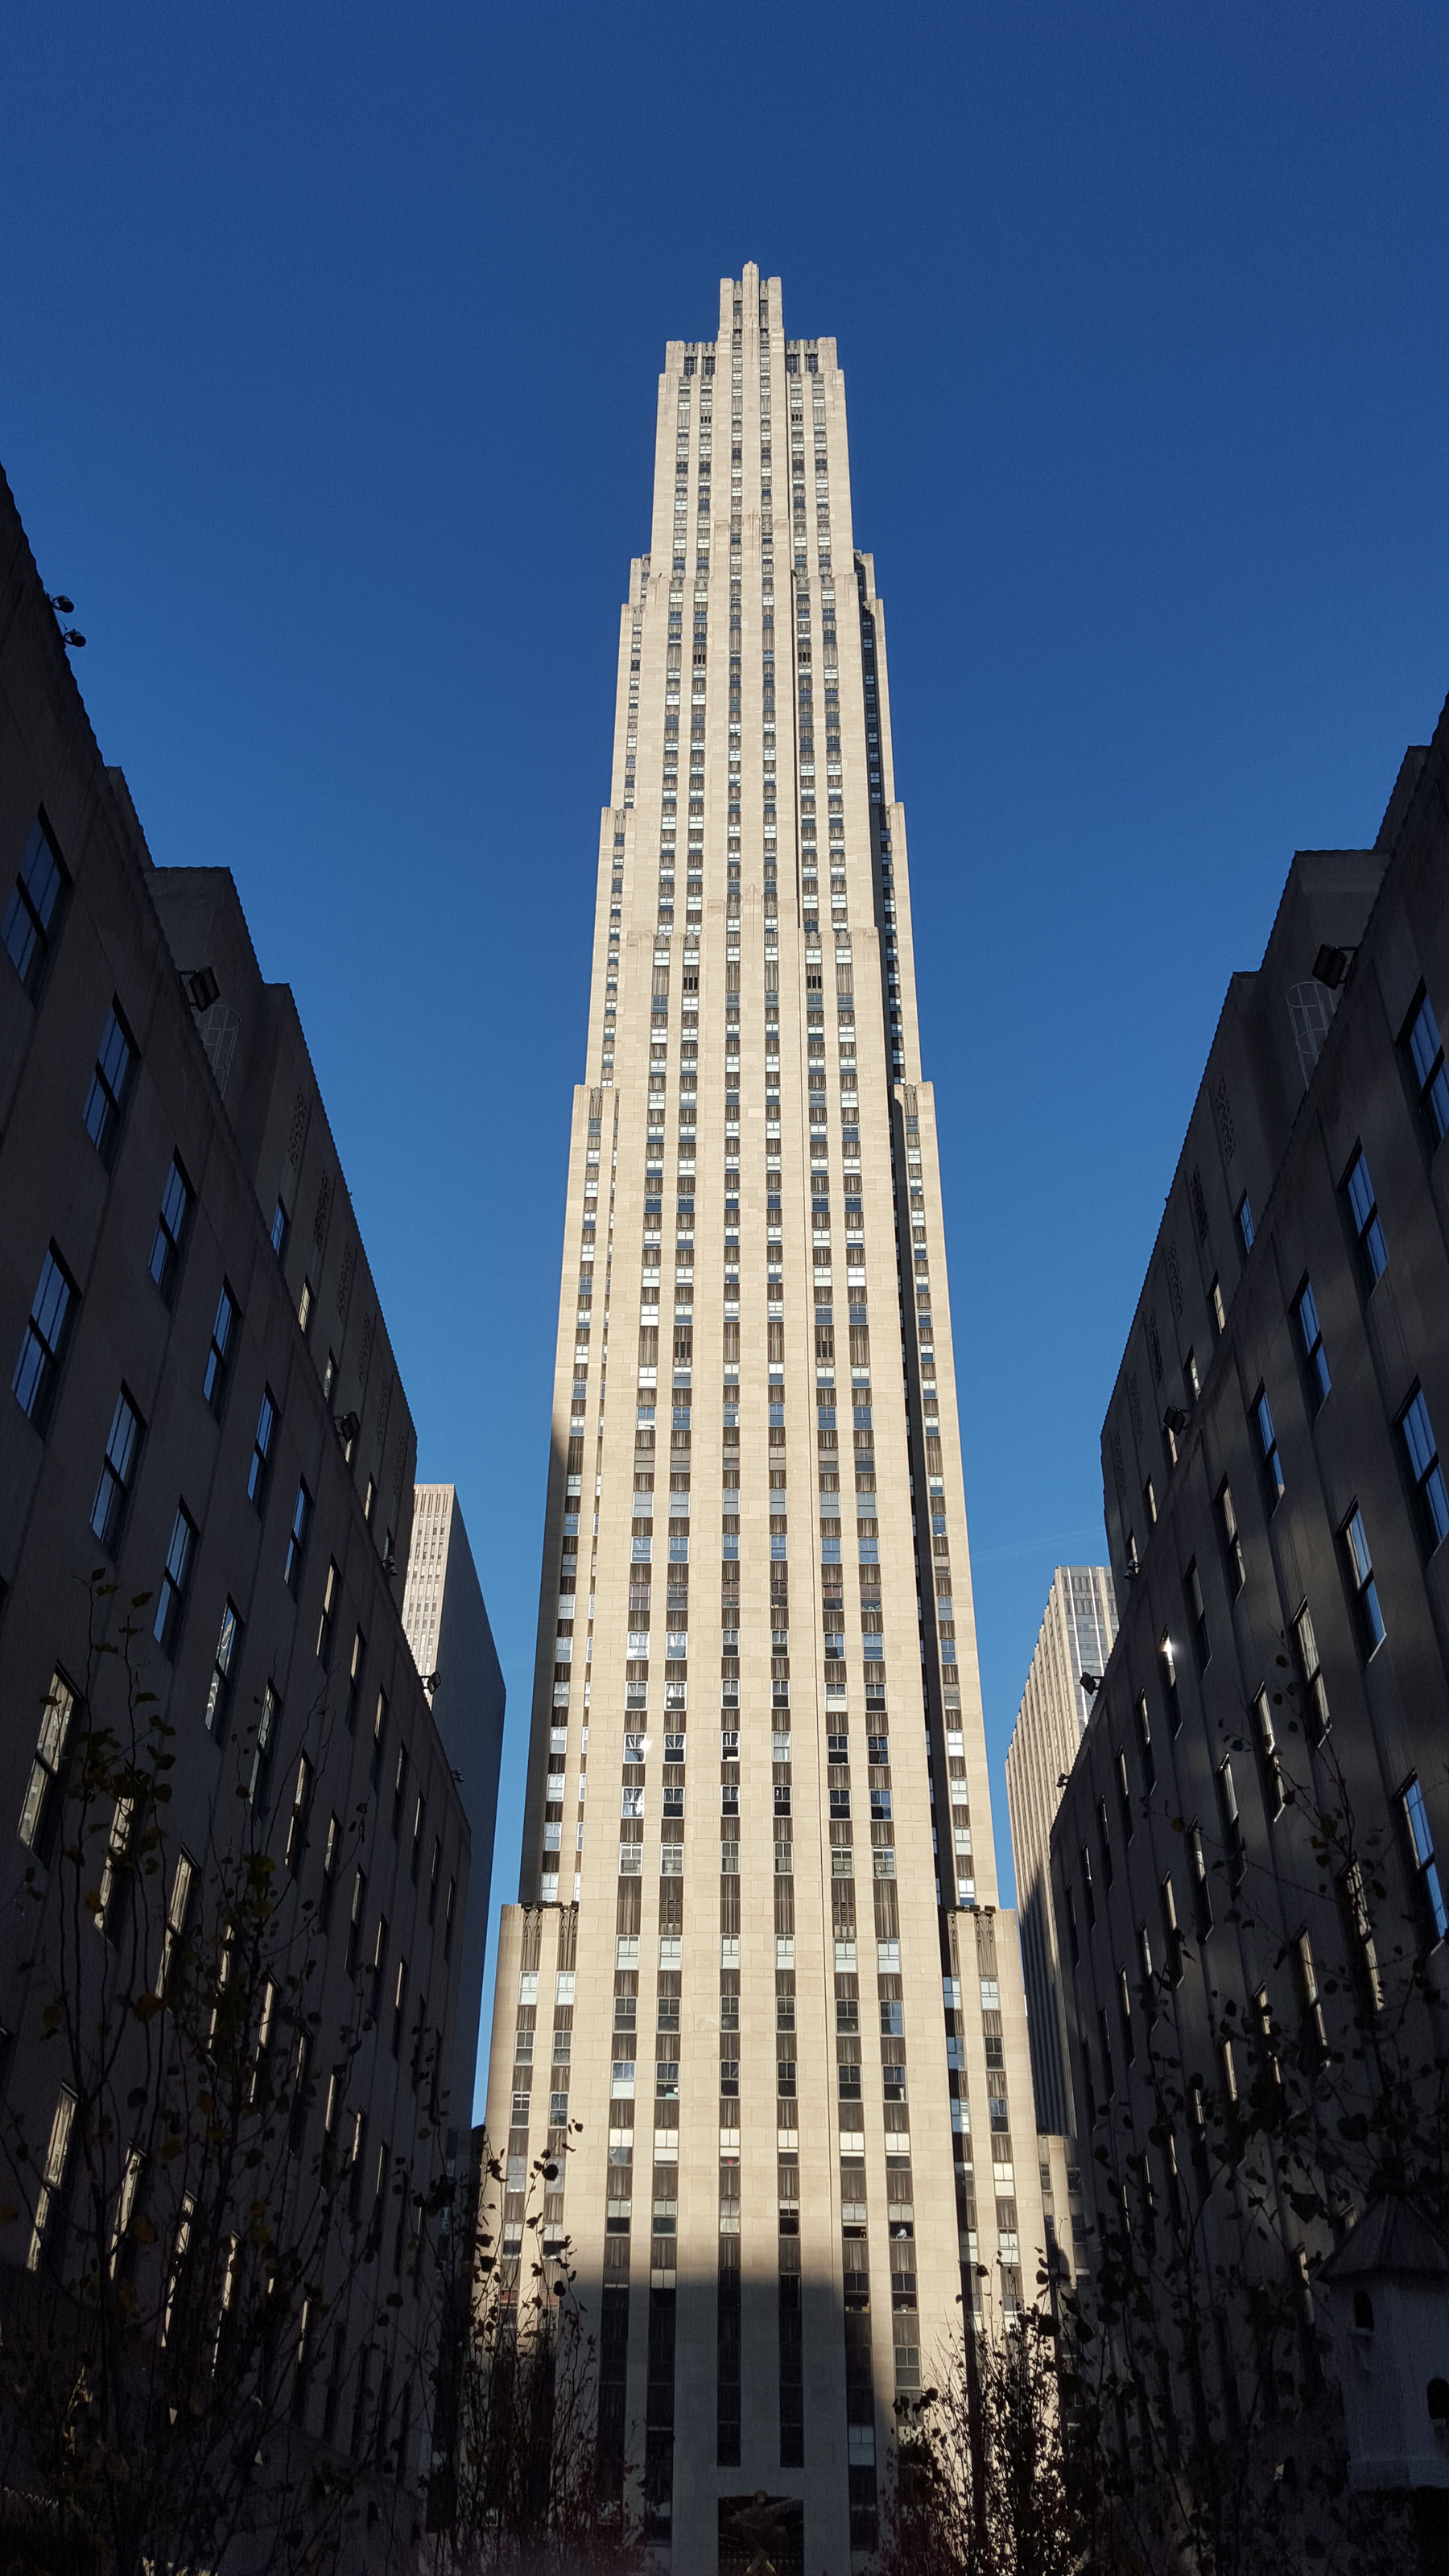 The GE Building at 30 Rockefeller Plaza